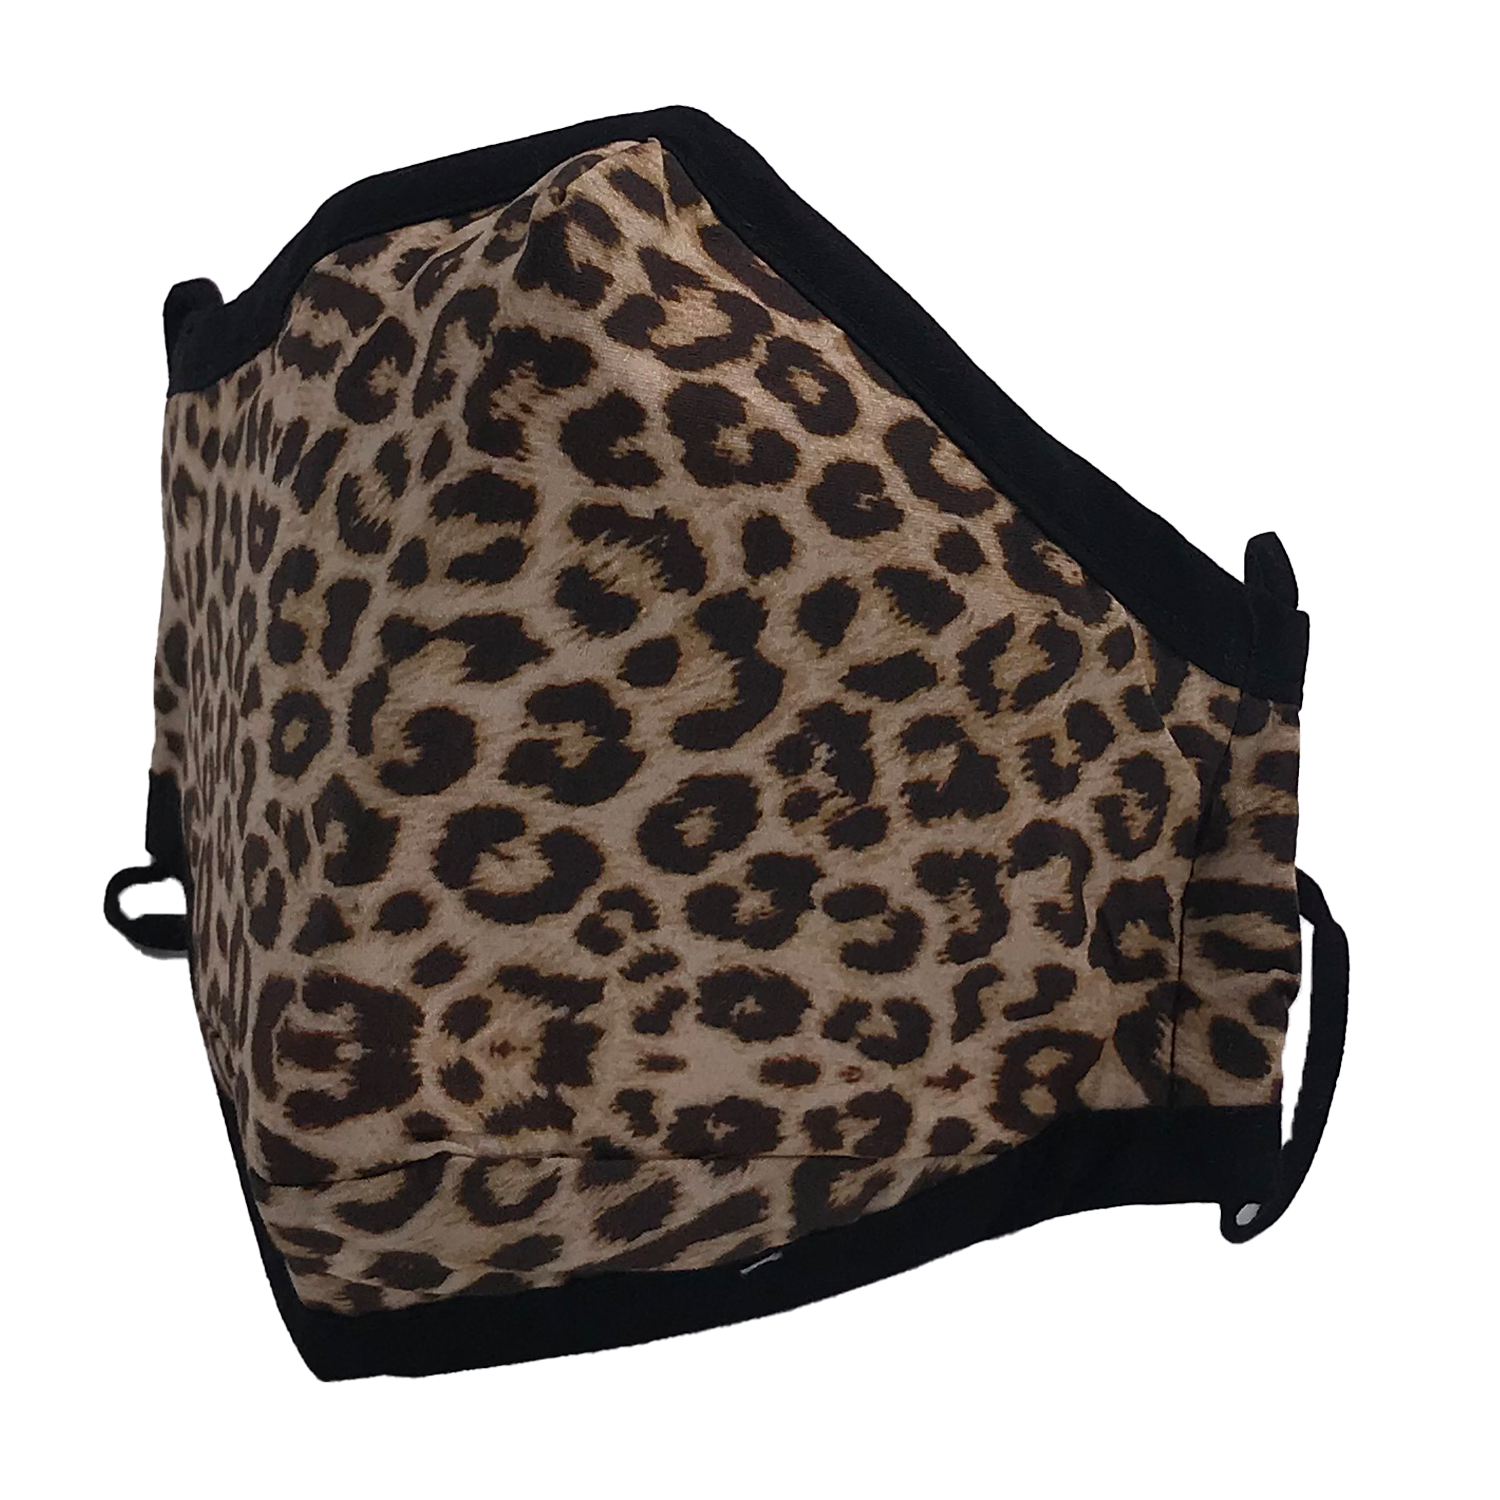 ADULT MASK LEOPARD BROWN